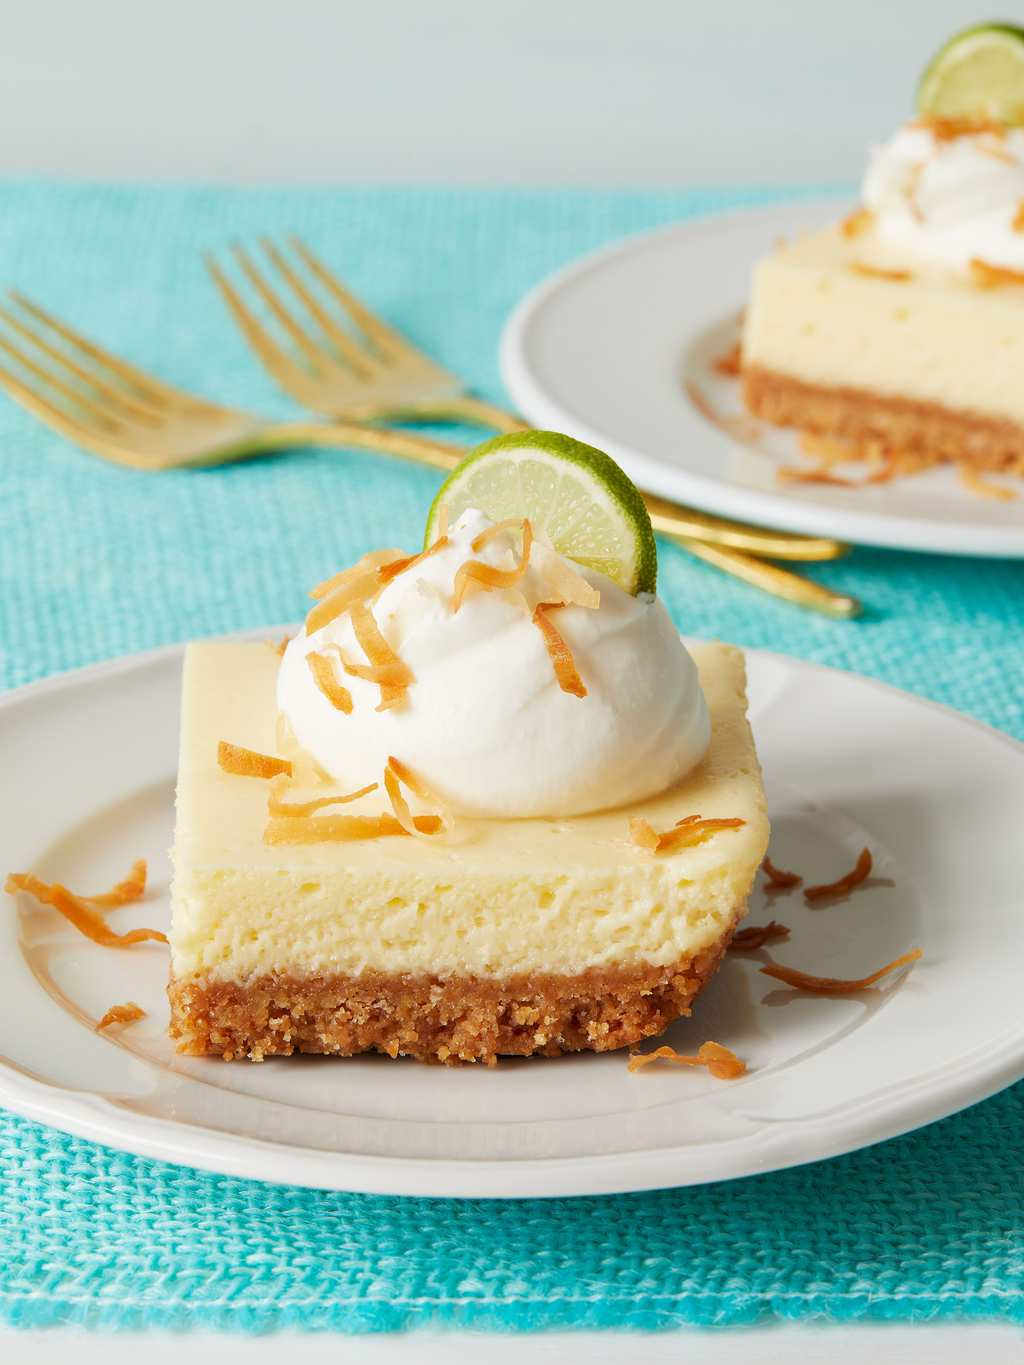 Coconut Key lime Bars on white plate and turquoise background